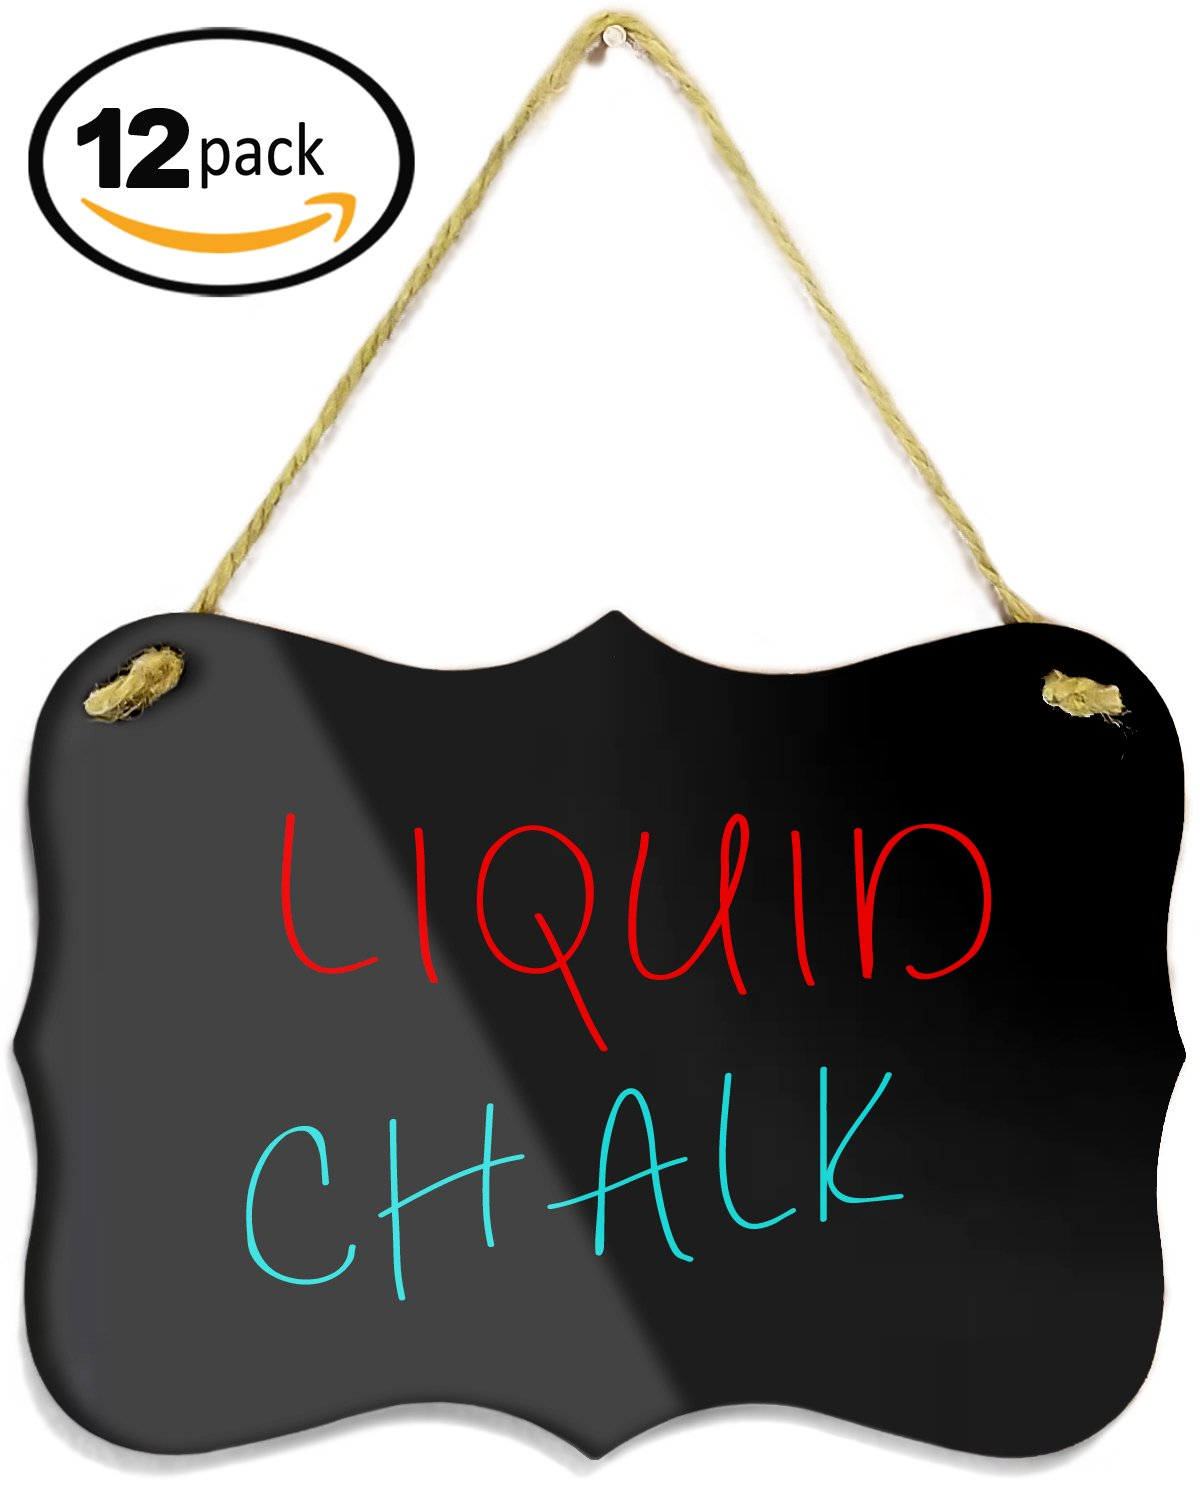 Mini Hanging Acrylic Chalkboard Signs 4x6 - Double Sided for Standard Chalk & other side for Liquid Chalk Marker- Memo Message Sign - Small Blackboard - For Crafts - Menus - Florists - Events (3) Advanced Group Corp.